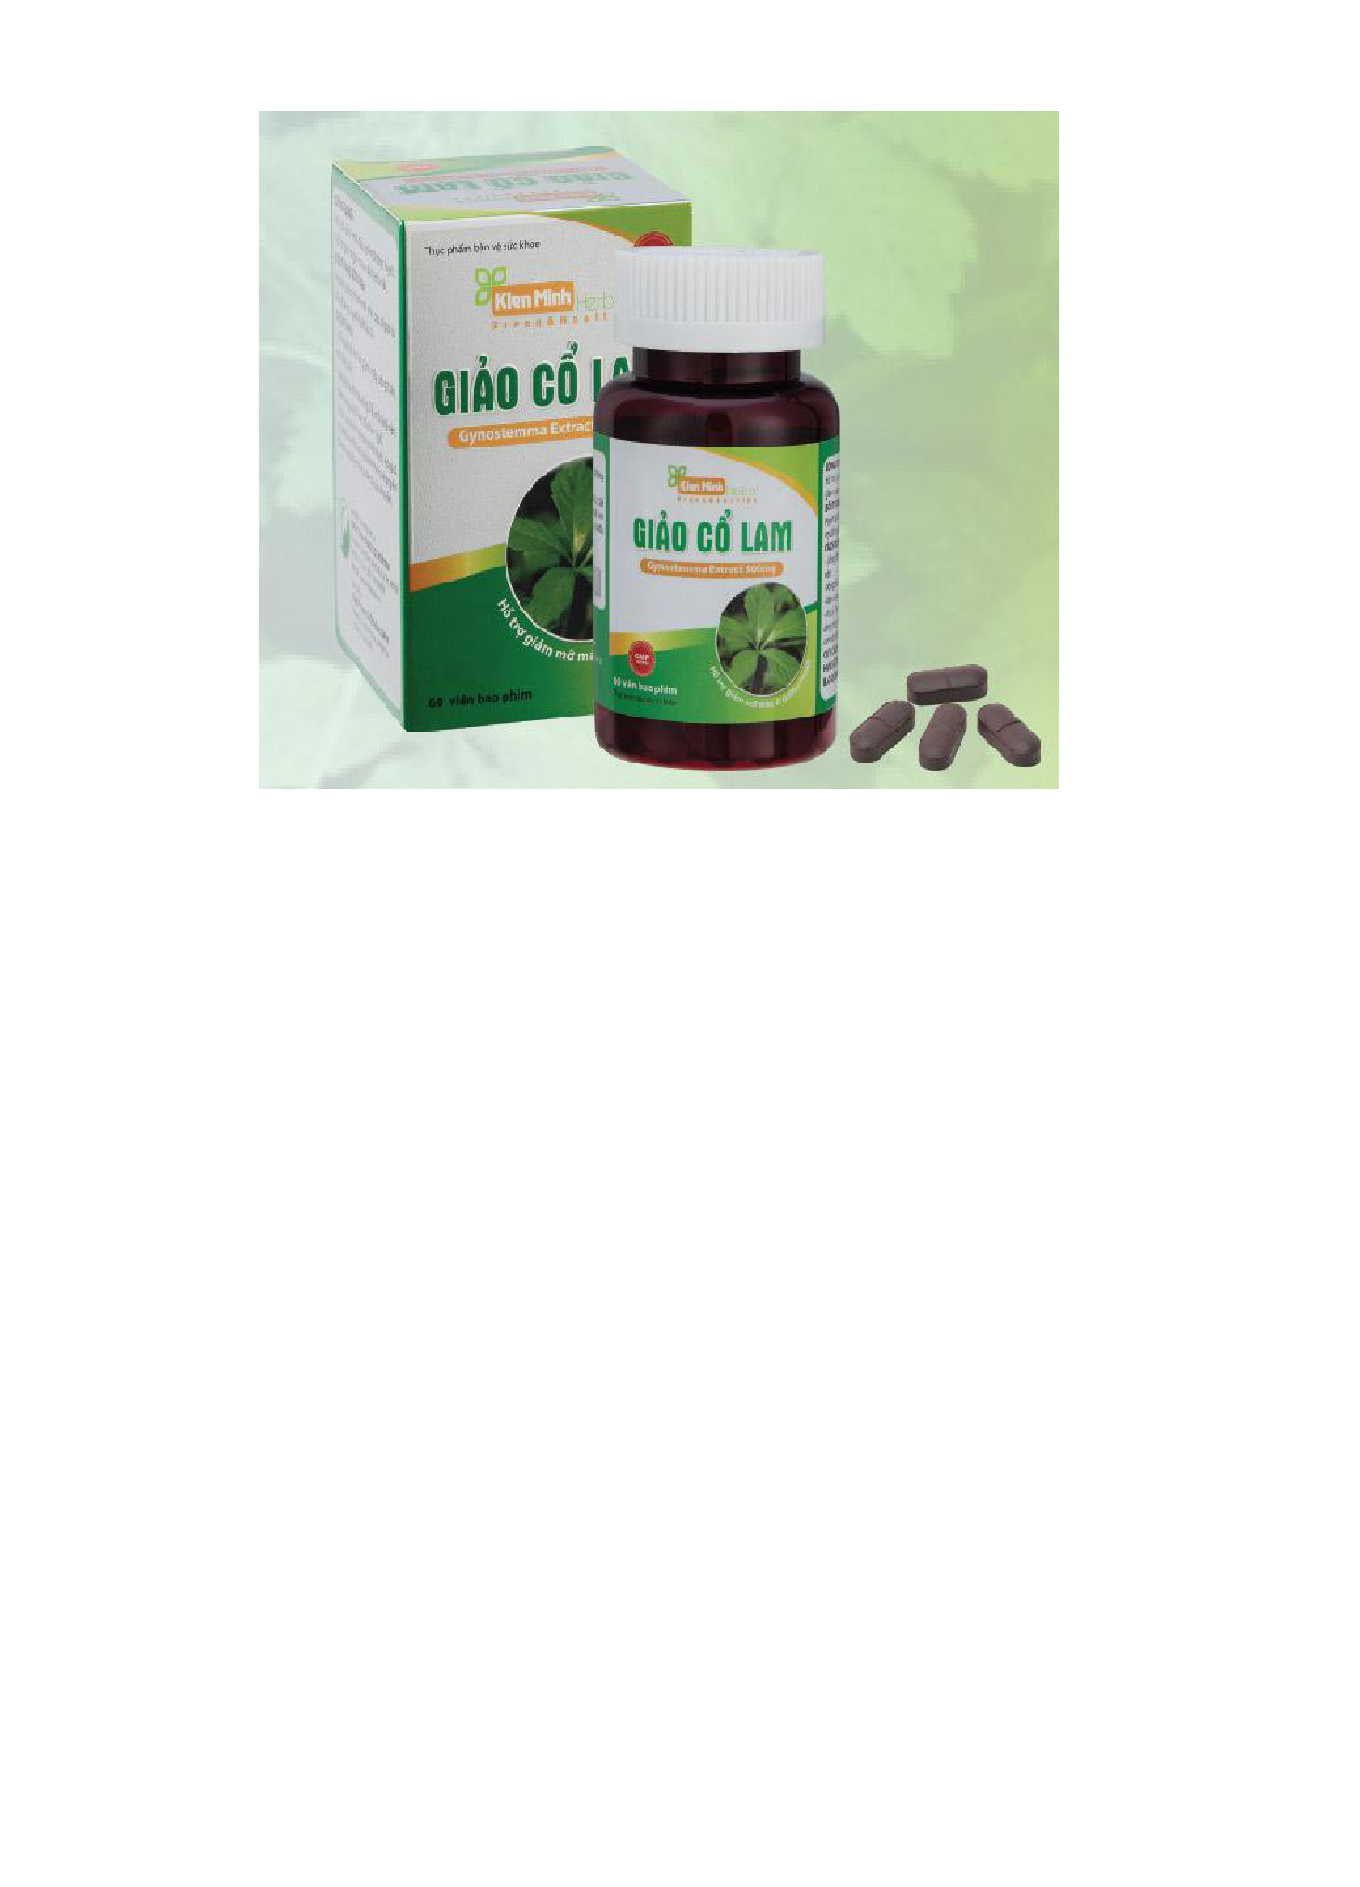 GIẢO CỔ LAM Gynostemma Extract 500mg